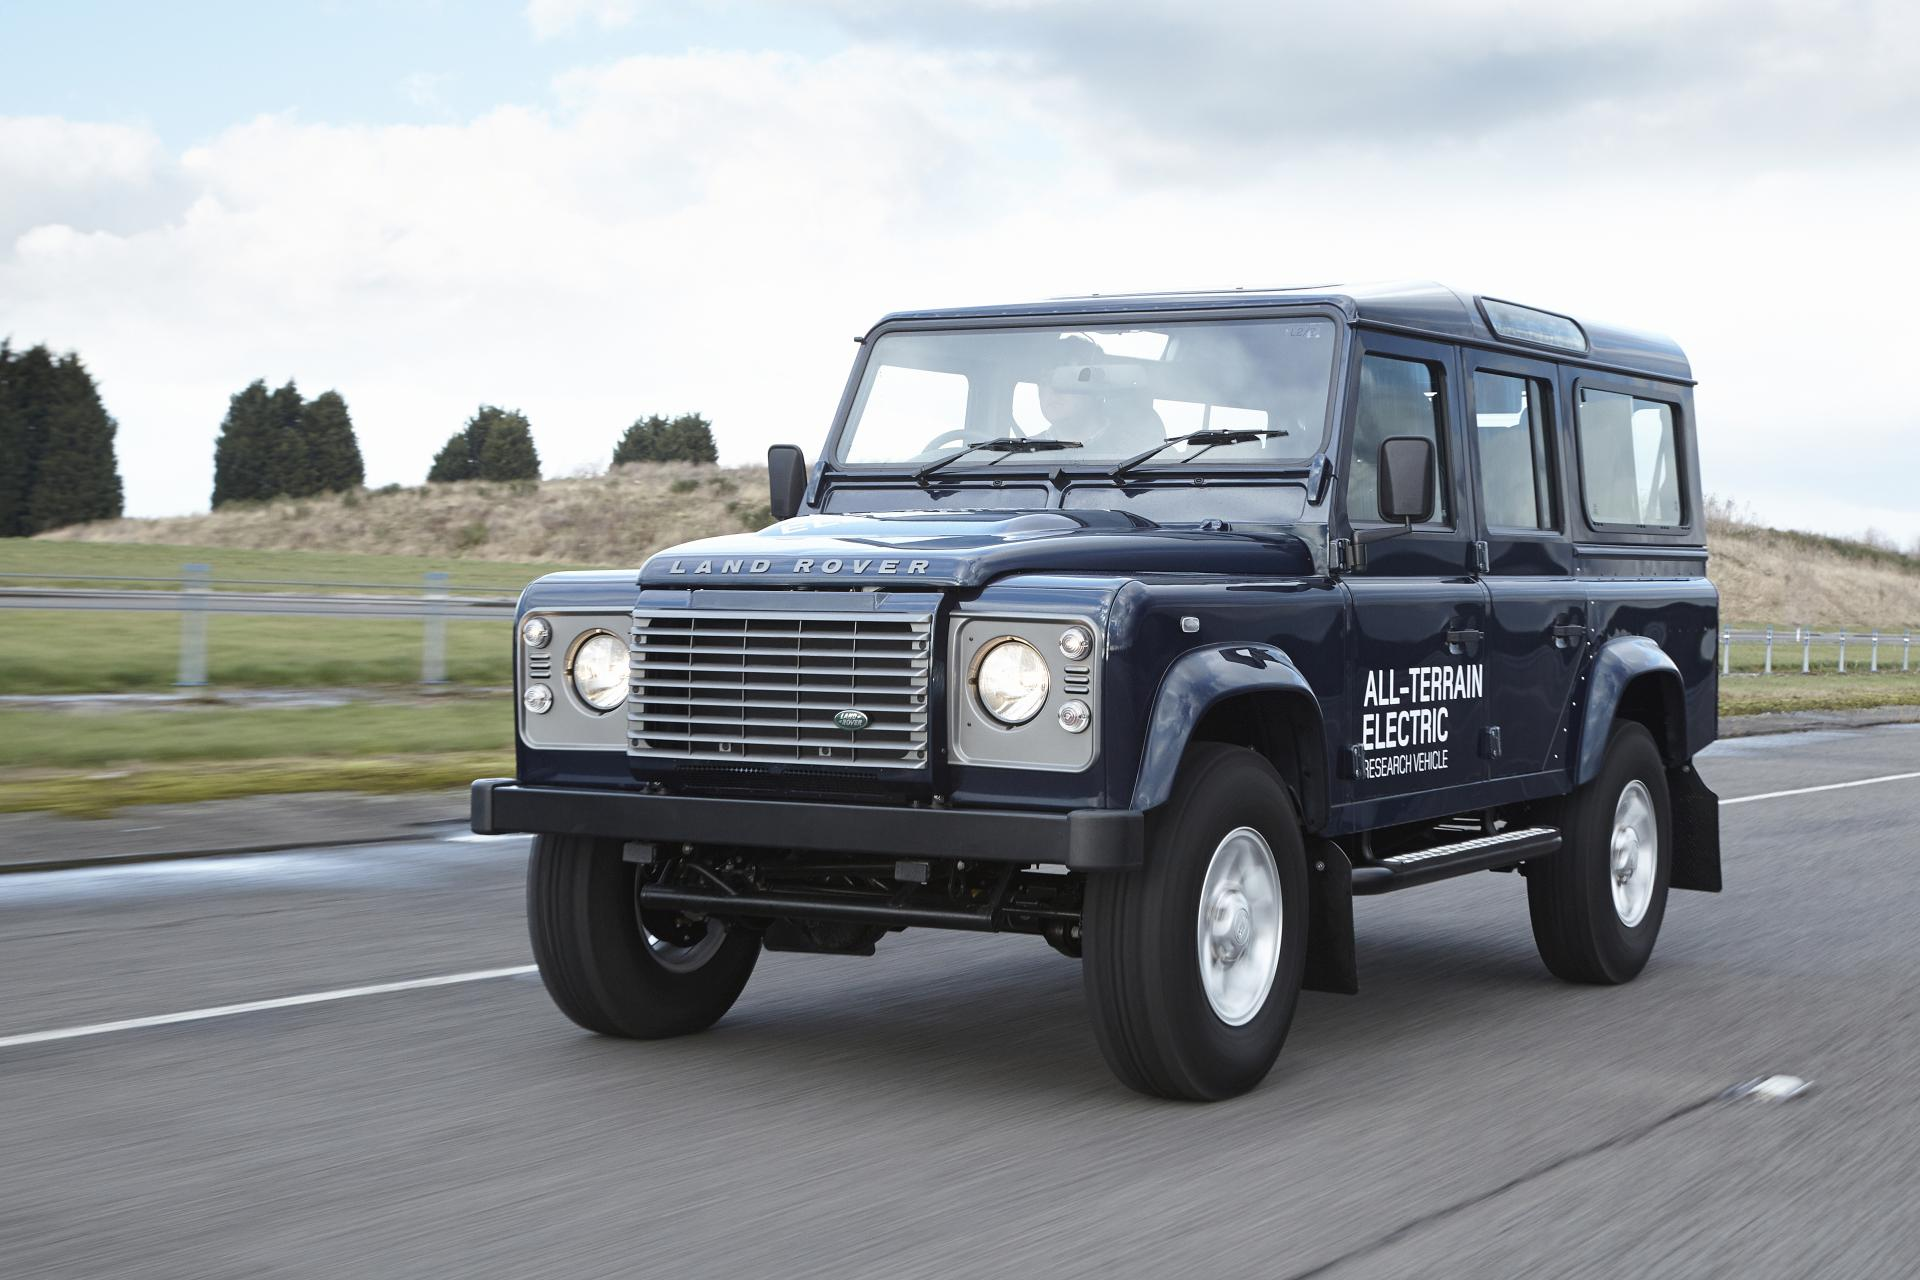 Land Rover Height 2013 Land Rover Rover Defender Electric Concept Technical